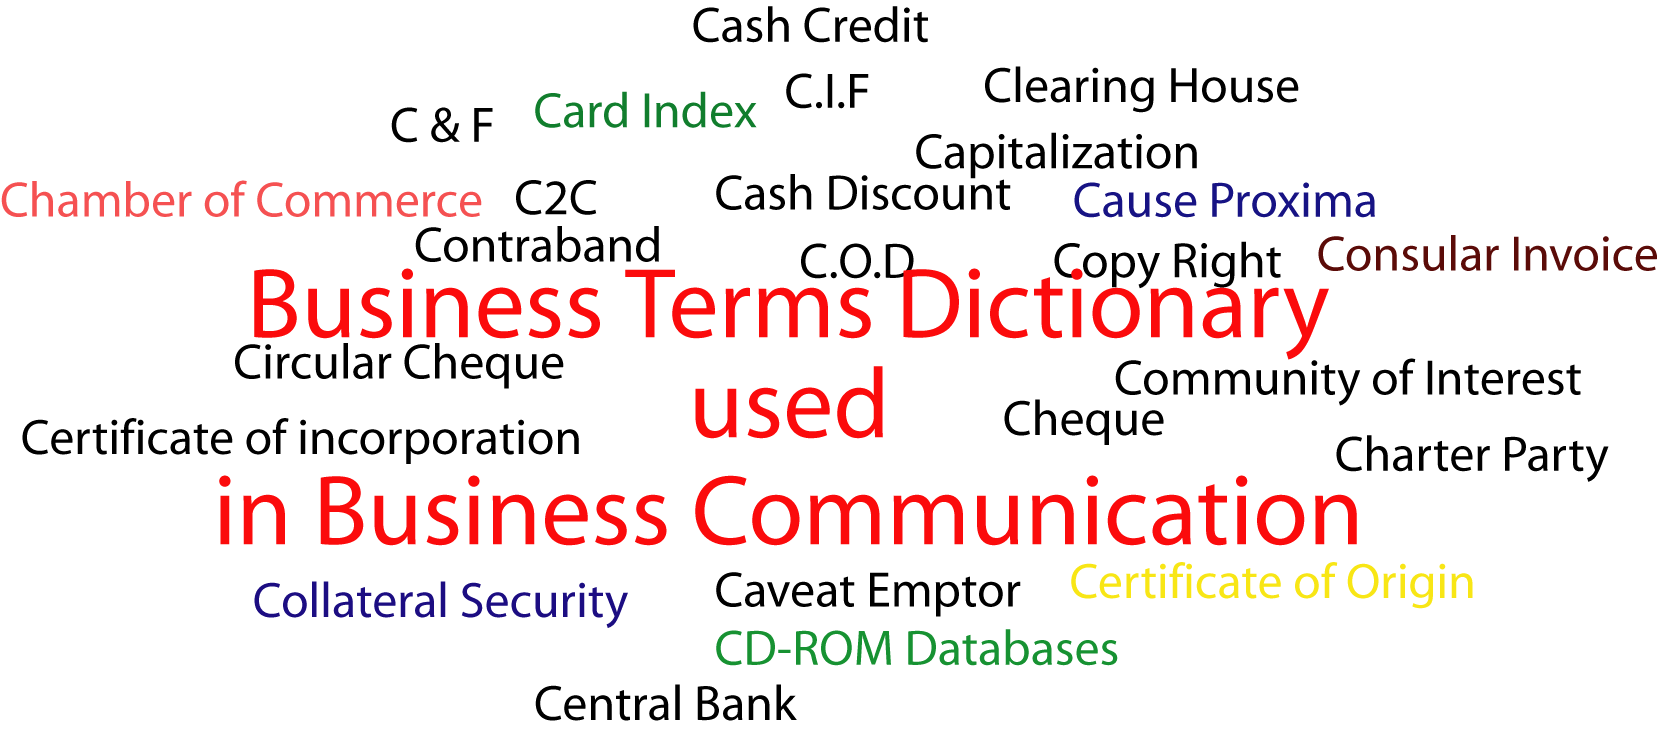 business_terms_dictionary_used_in_business_communication